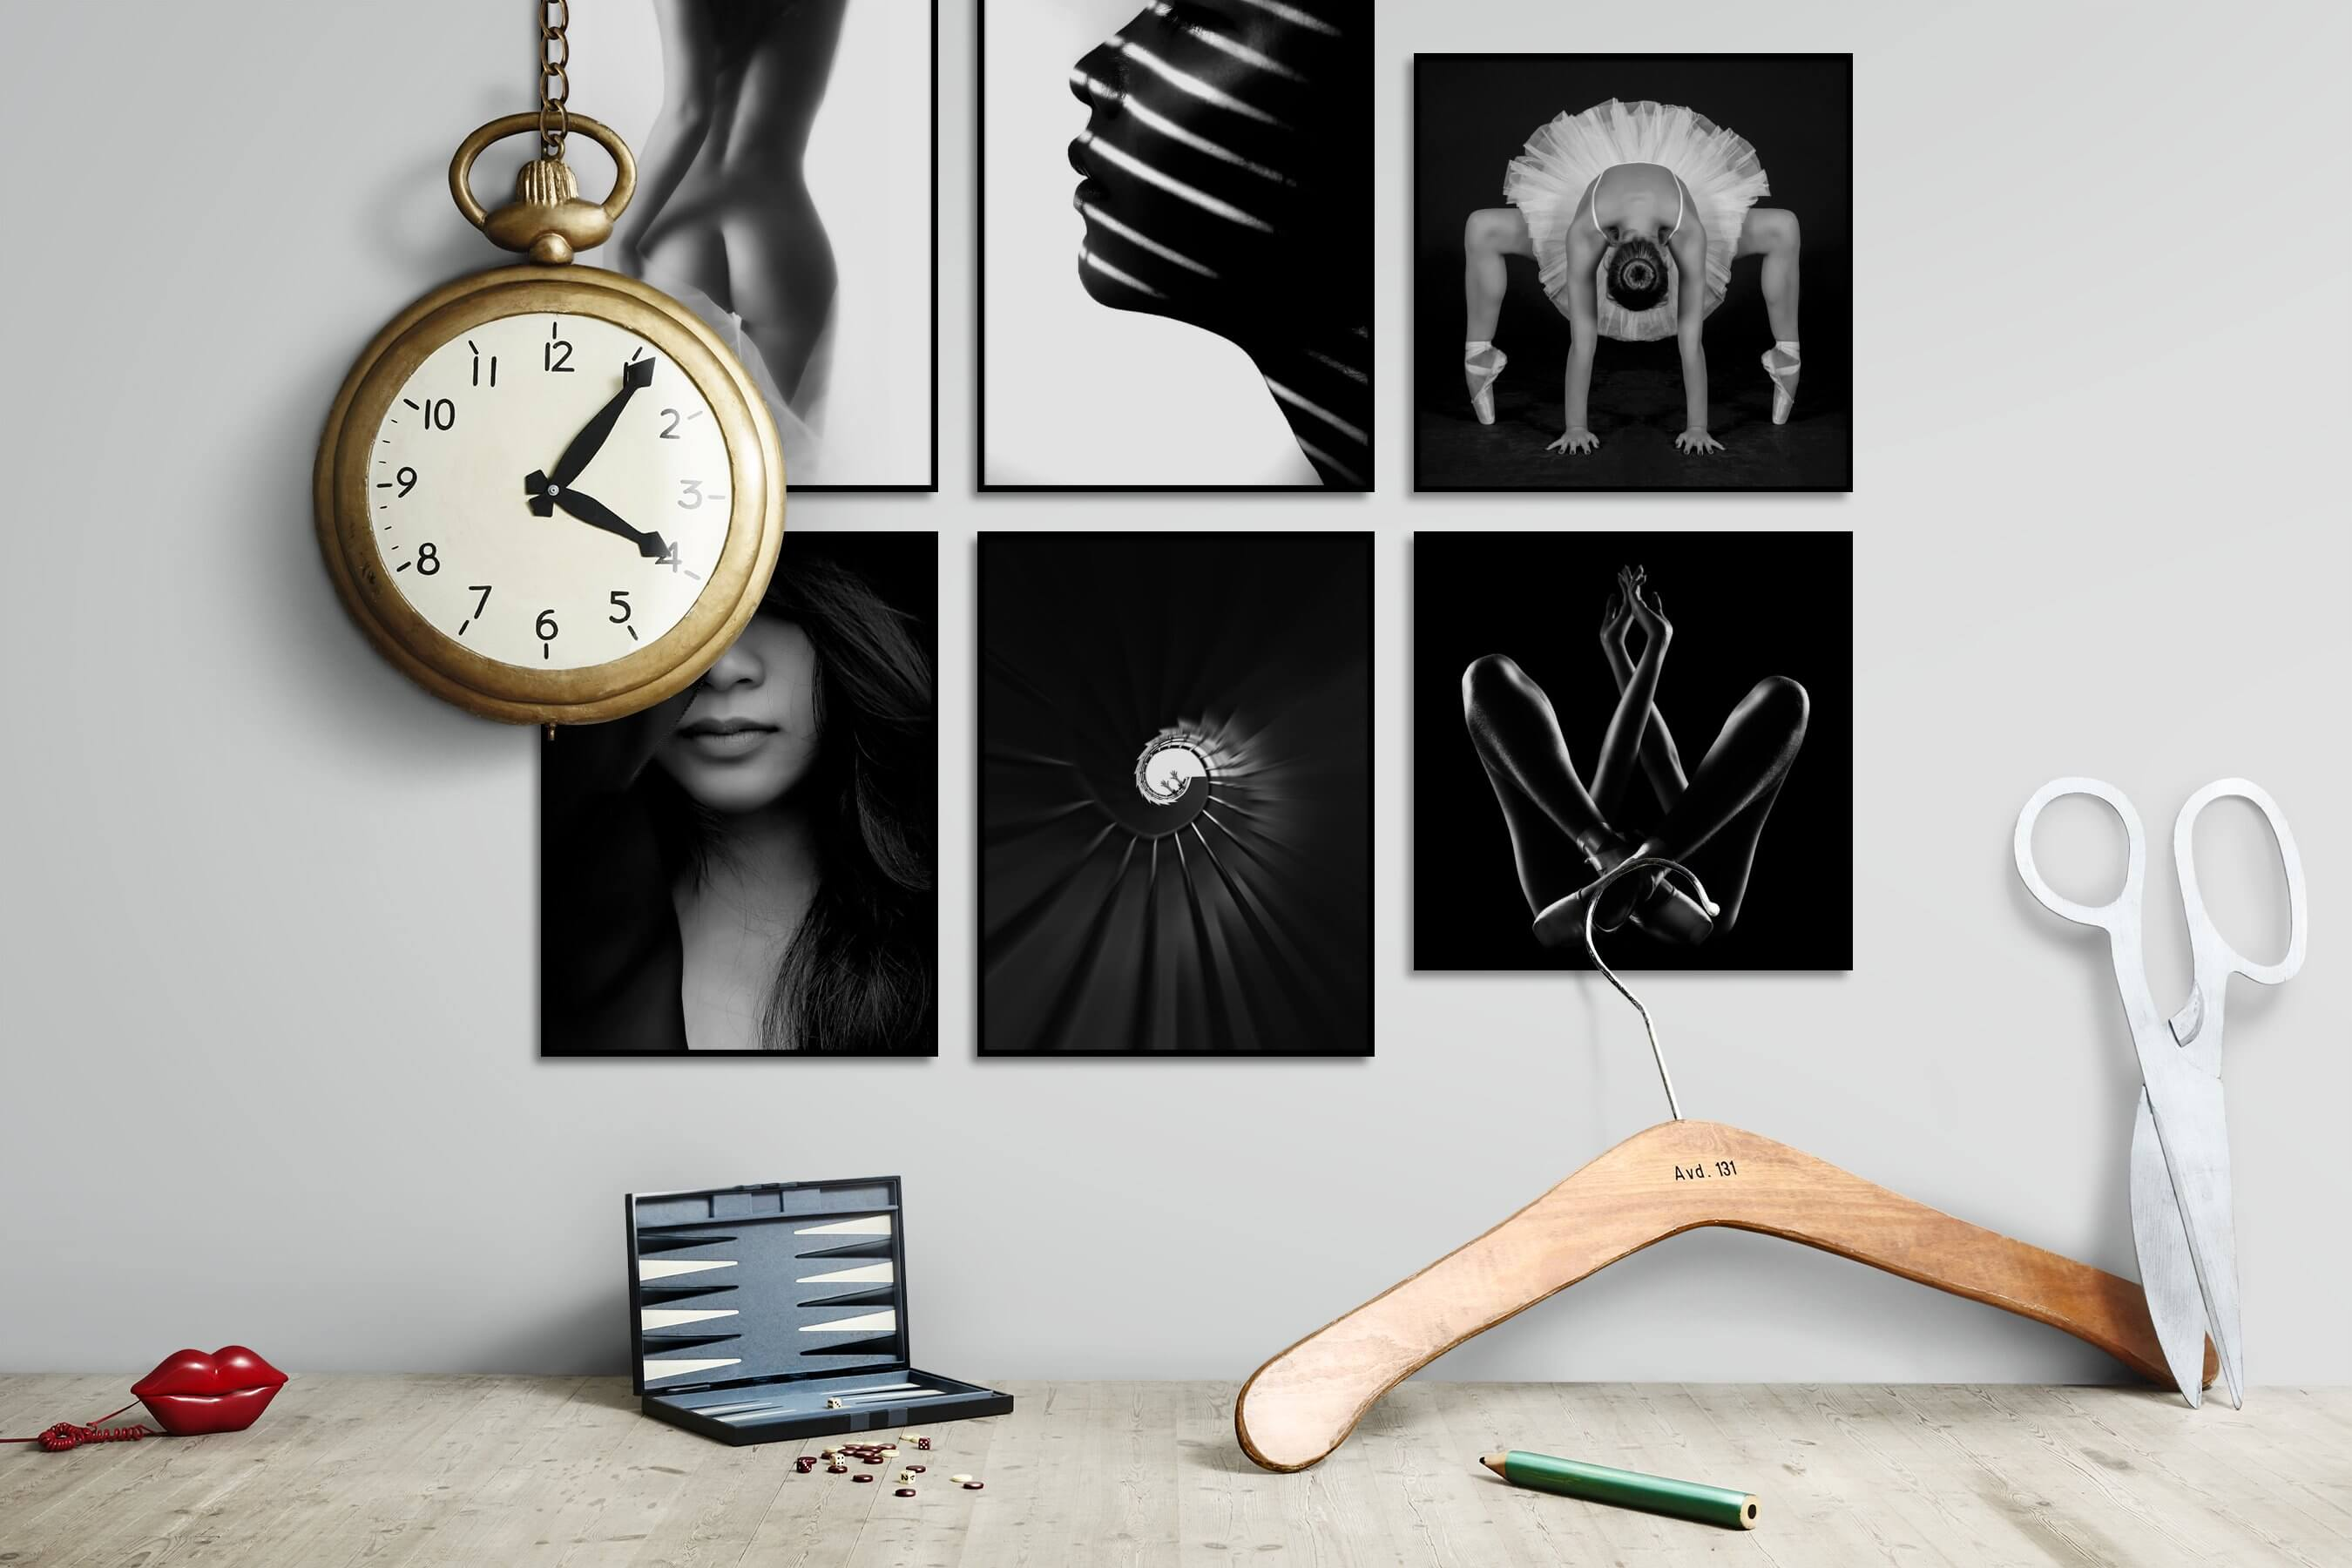 Gallery wall idea with six framed pictures arranged on a wall depicting Fashion & Beauty, Black & White, Bright Tones, For the Minimalist, For the Moderate, and Dark Tones